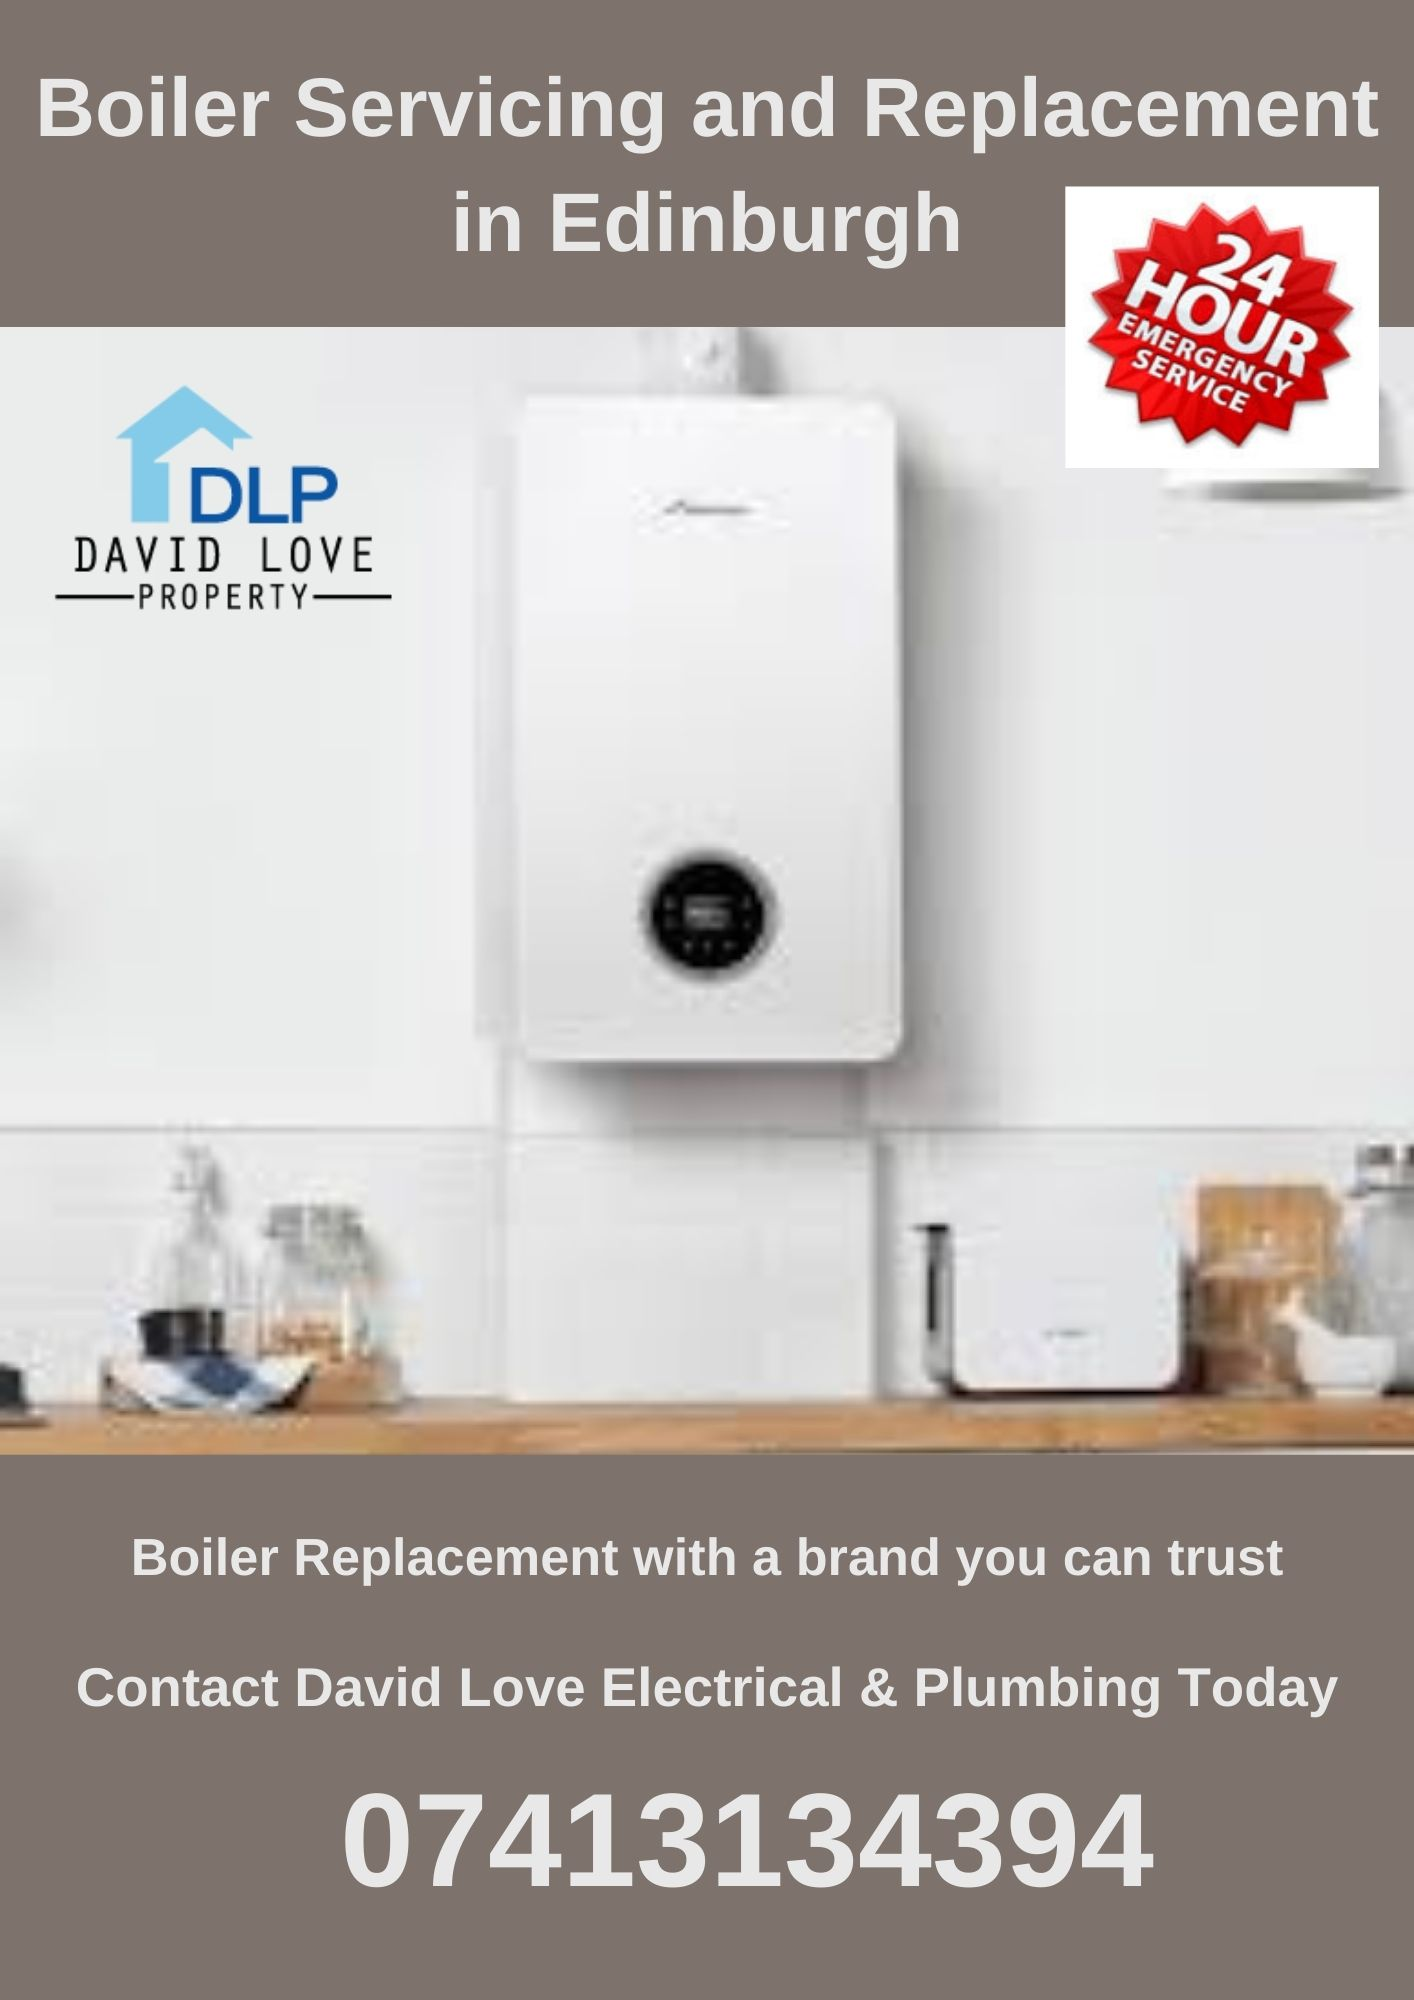 Edinburgh Boiler servicing and Replacement company David Love Electrical Pl...